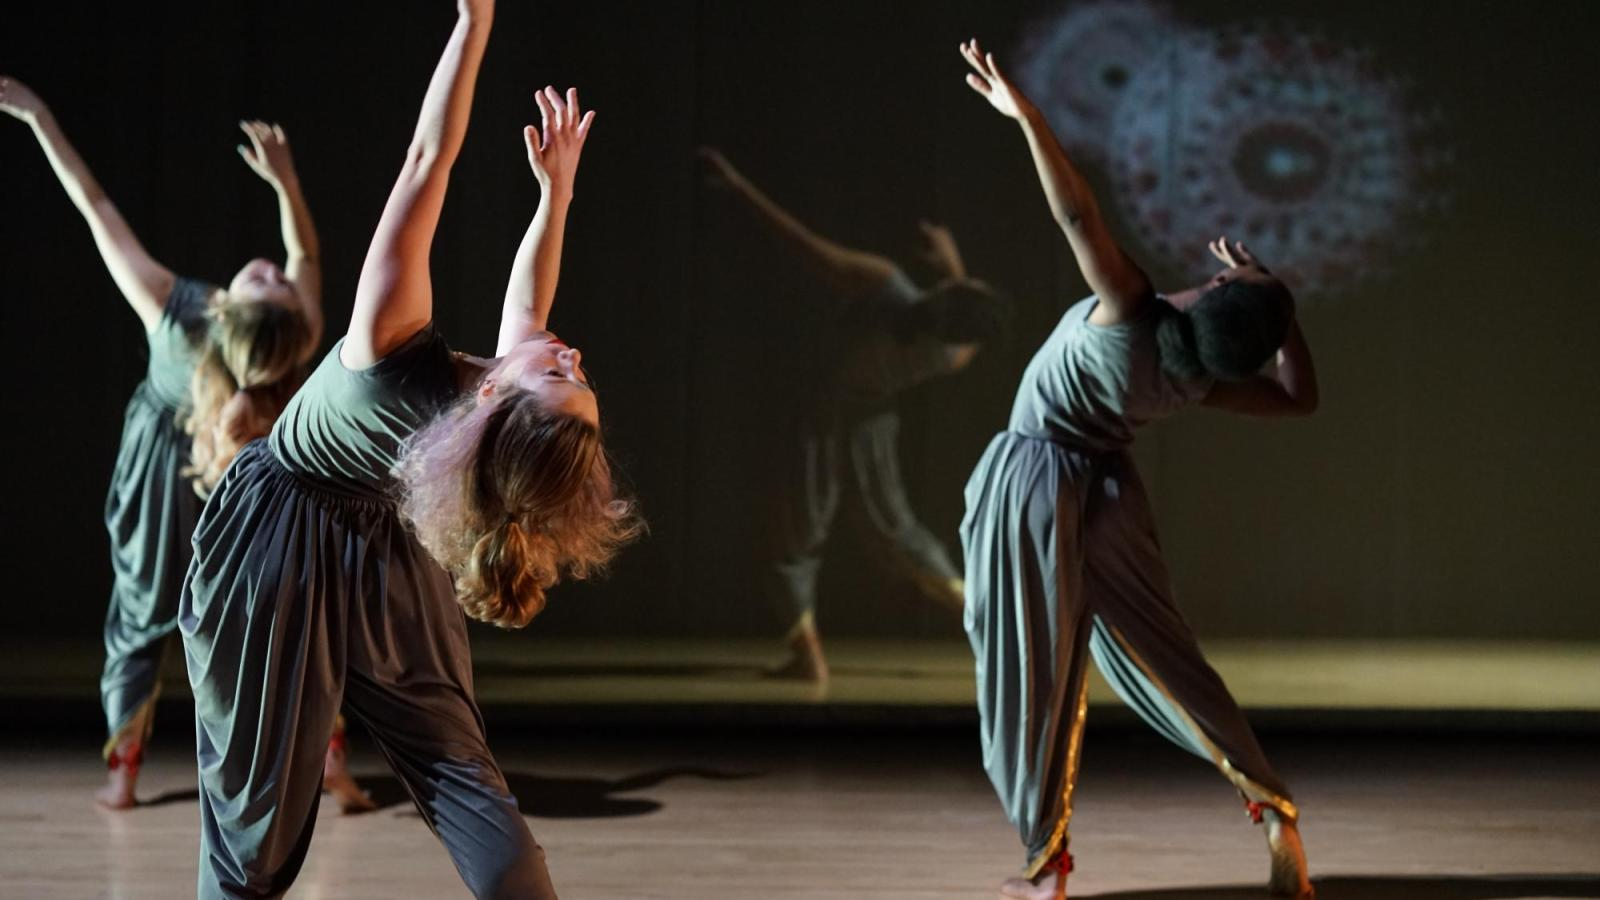 dancers on stage, leaning back while reaching up to the ceiling